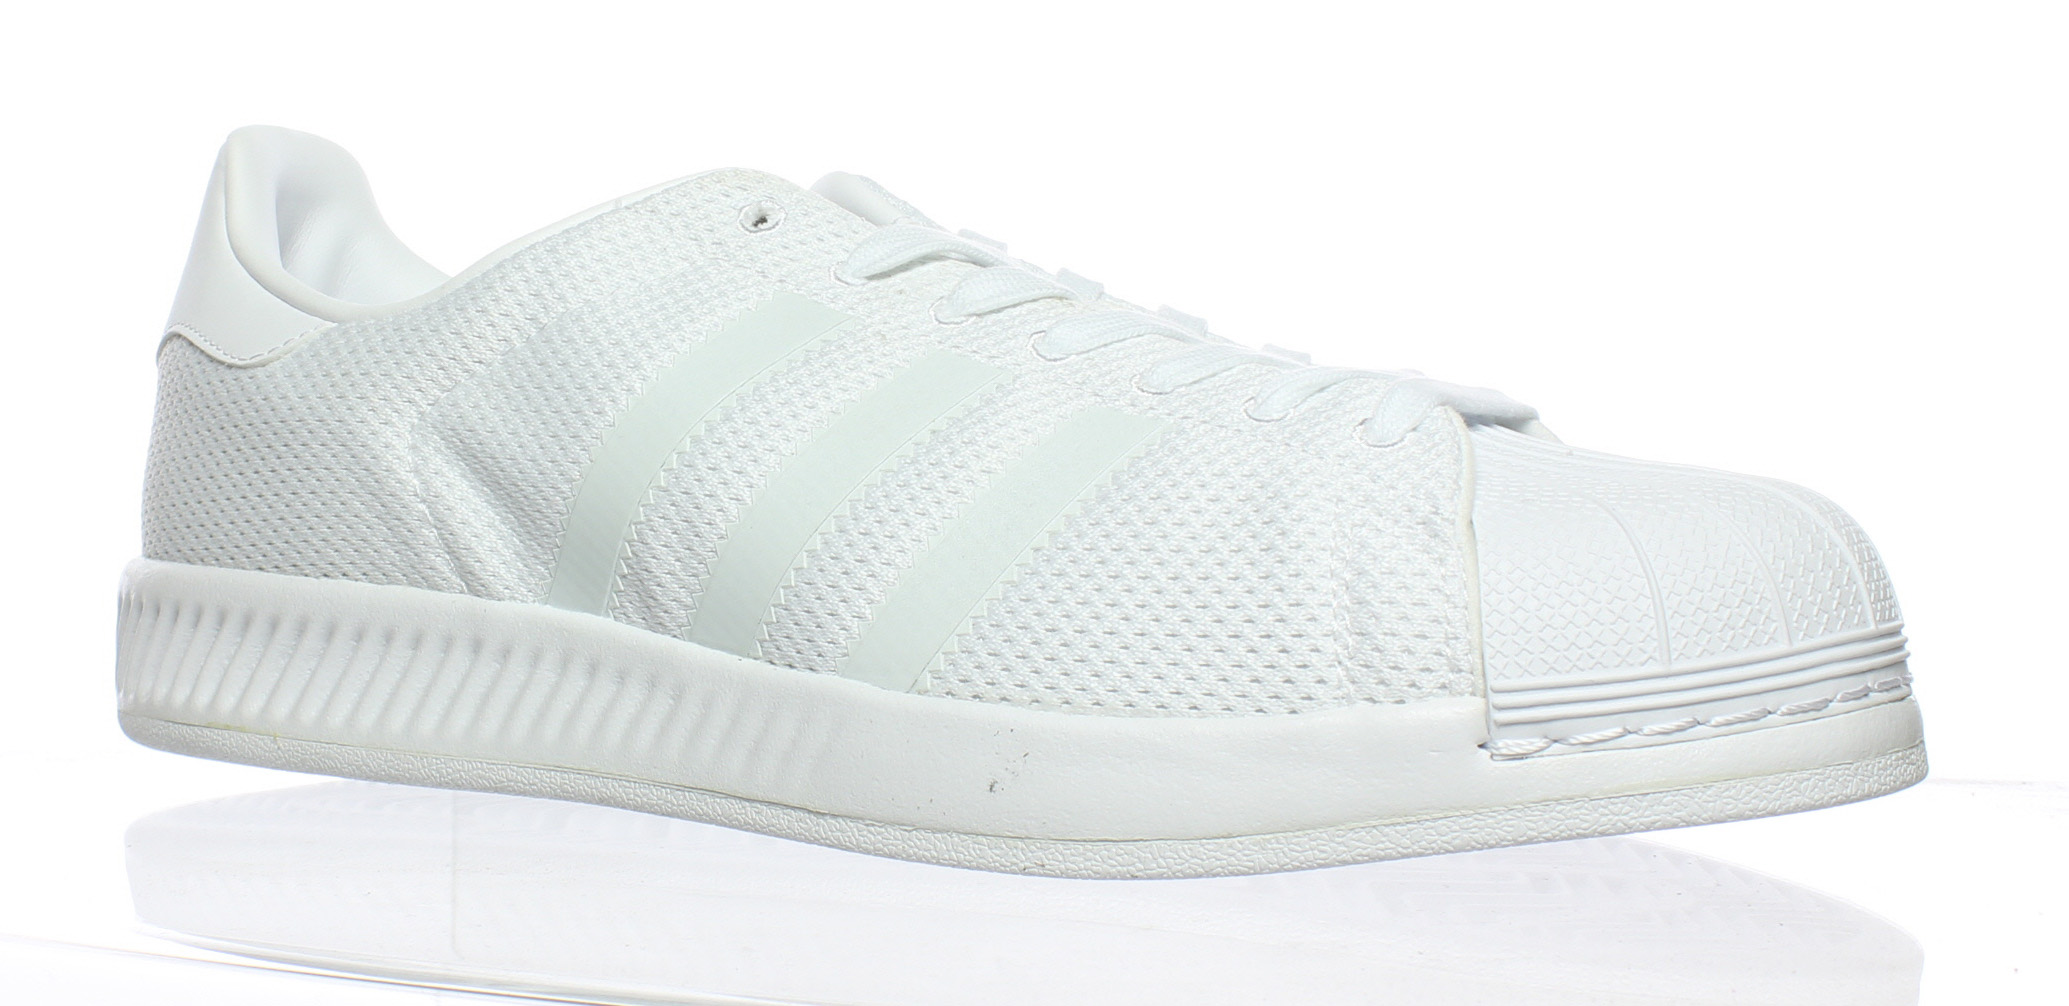 e8fc11529a0a4 ... amazon new adidas mens superstar bounce white walking shoes size 11  3c43d 39c88